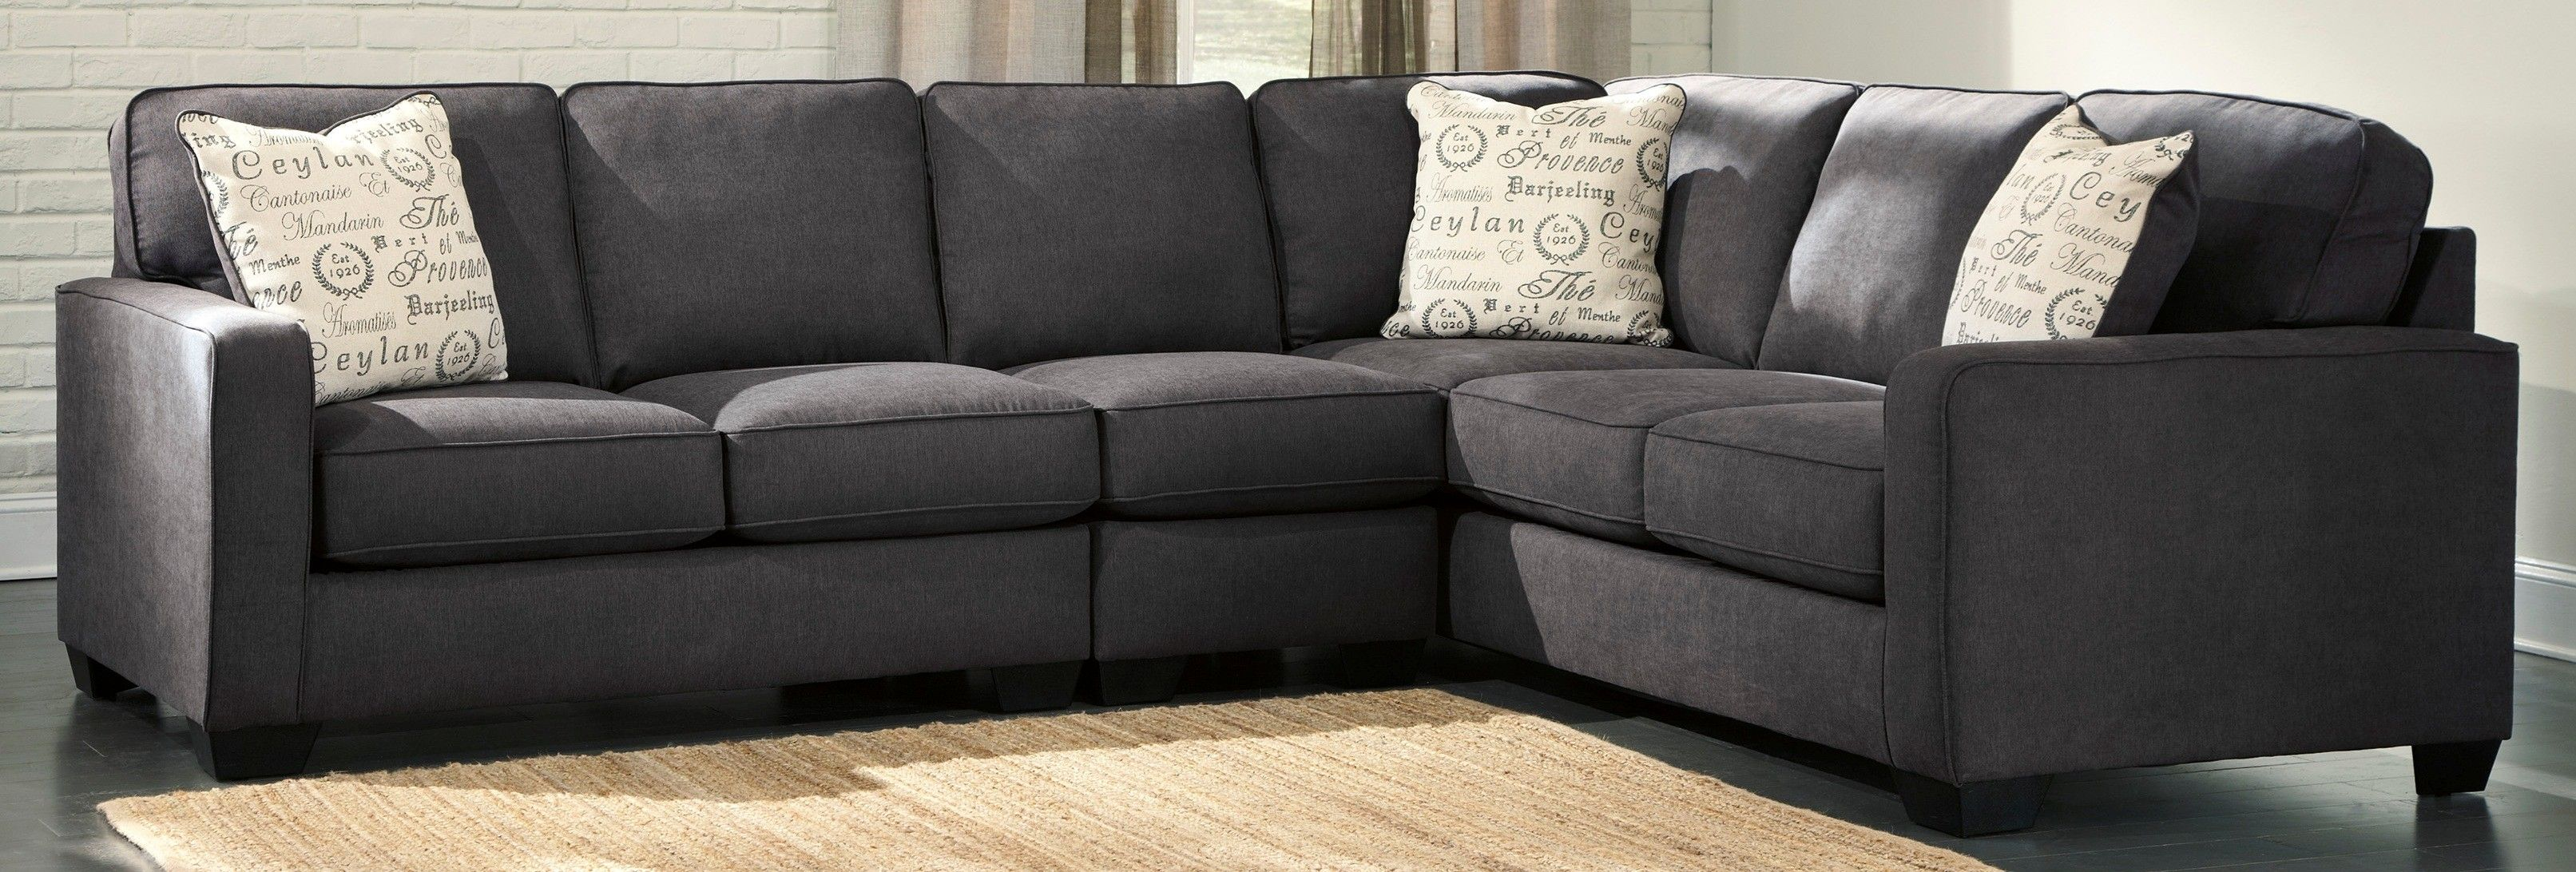 Ashley Alenya Charcoal Right Side Sofa Sectional